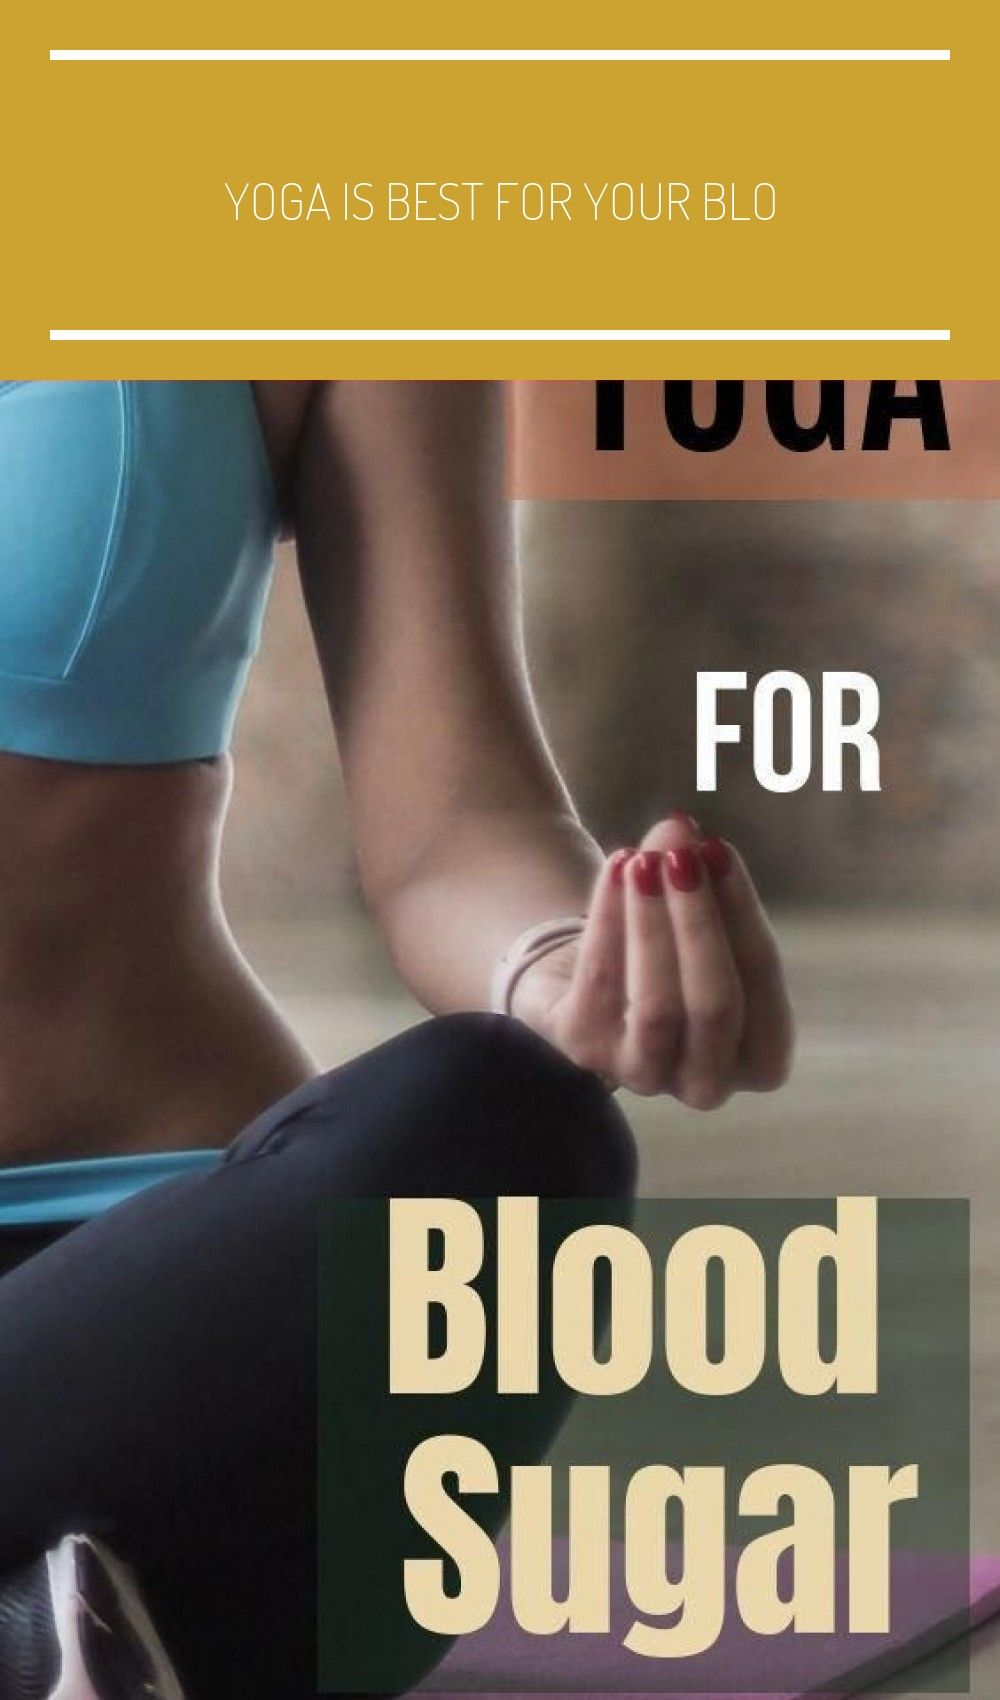 Yoga is best for your blood sugar because it helps keep your entire body active and control #diabete...